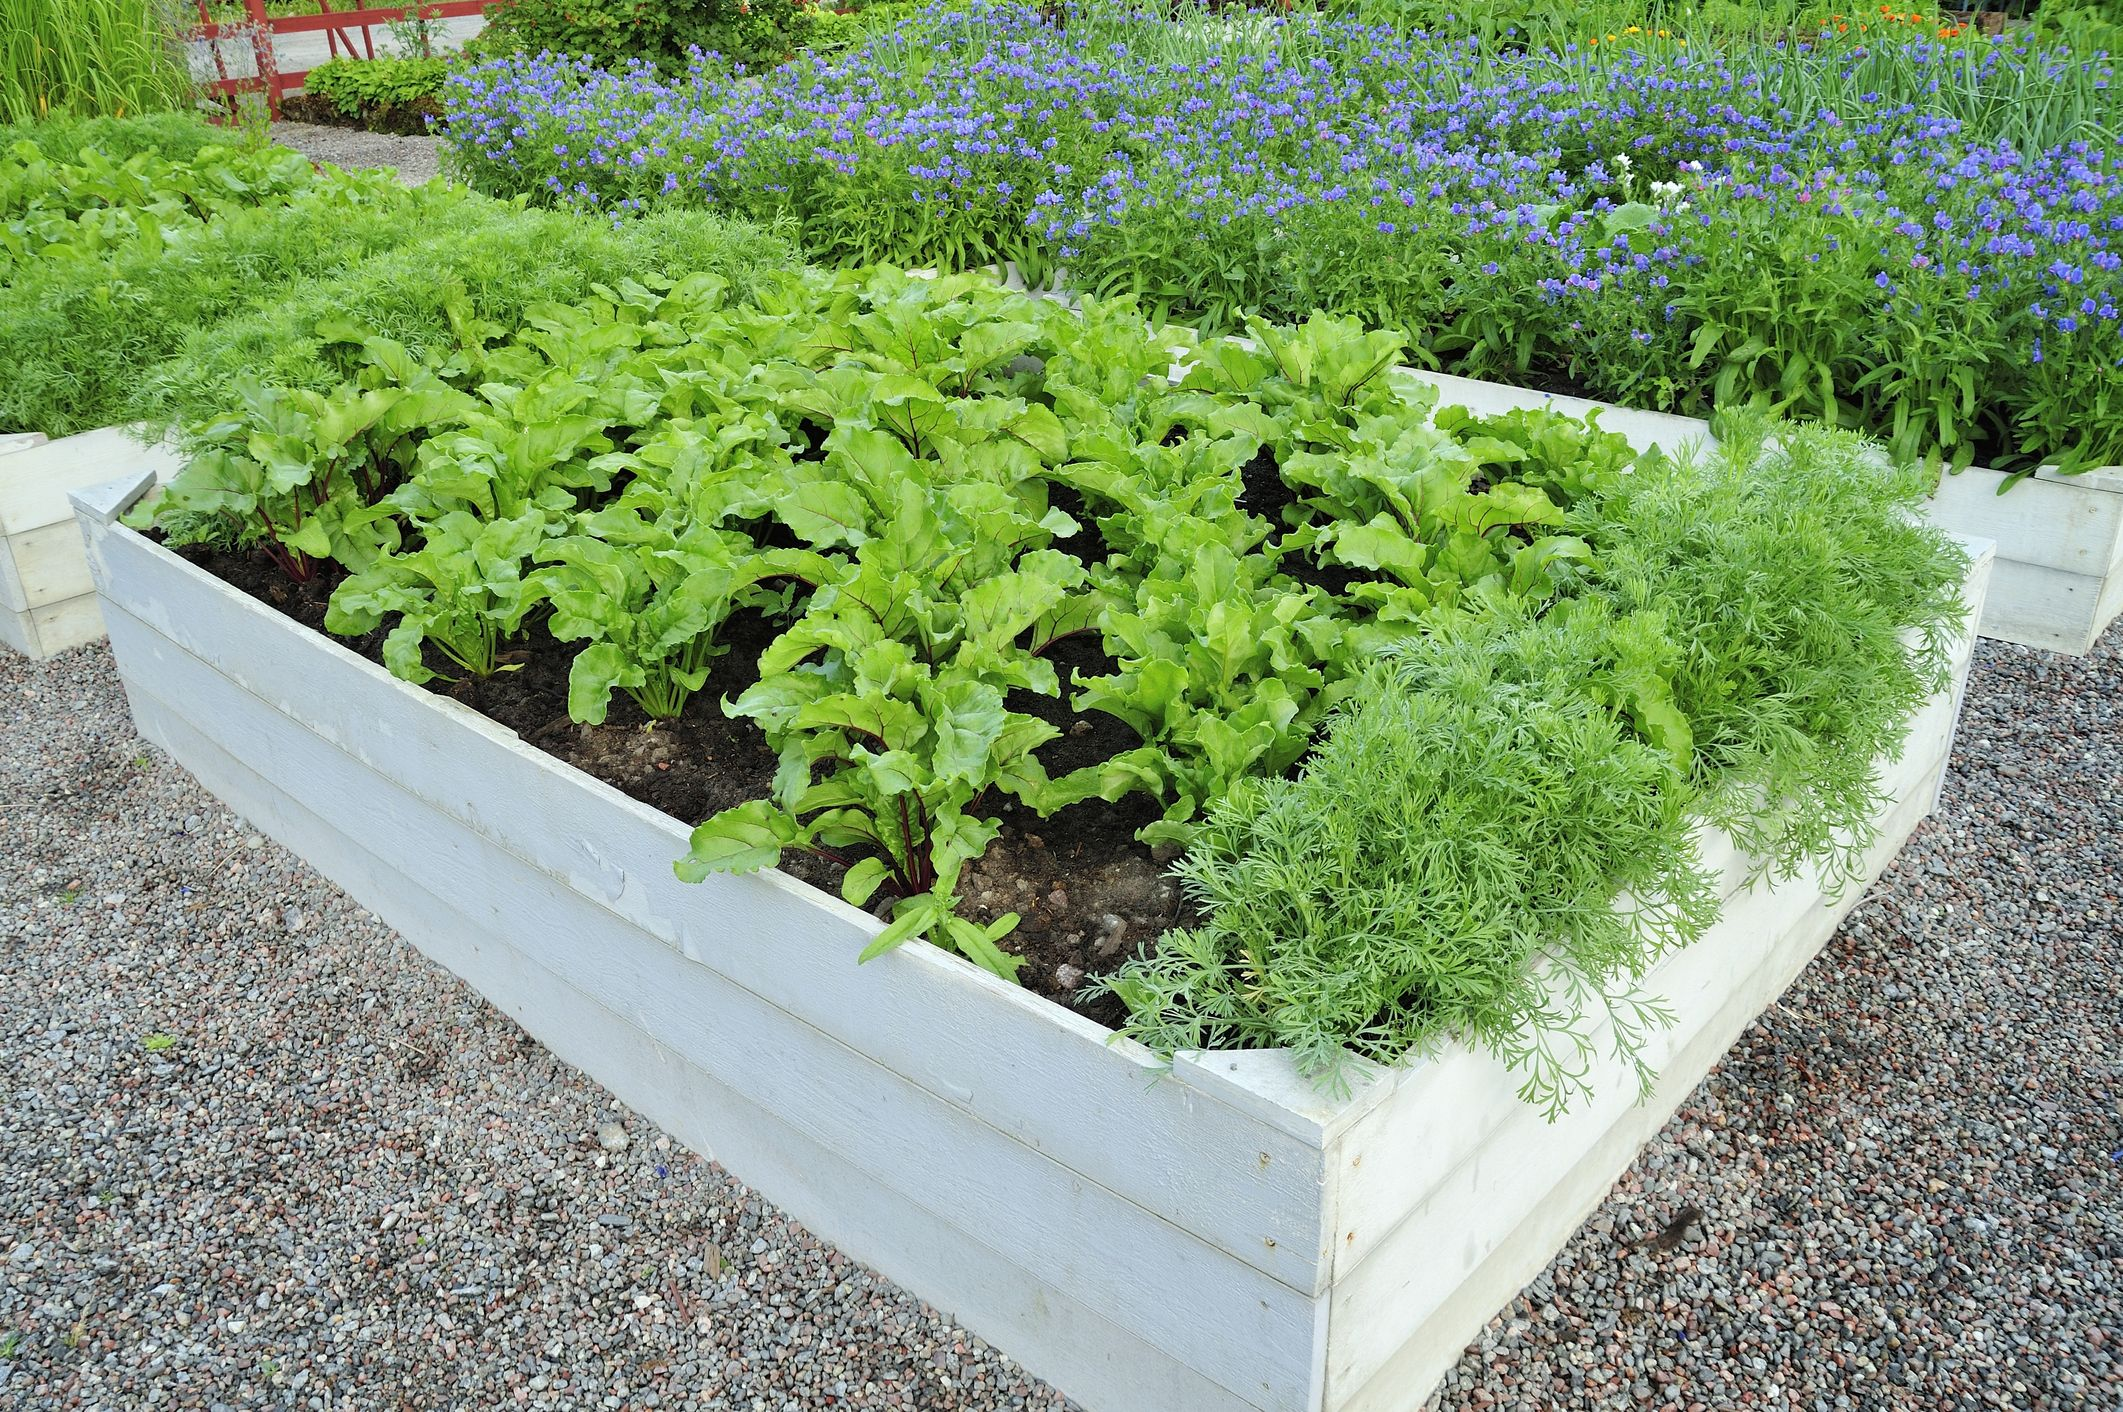 15 Inexpensive Raised Garden Bed Ideas, How To Make An Inexpensive Raised Garden Bed